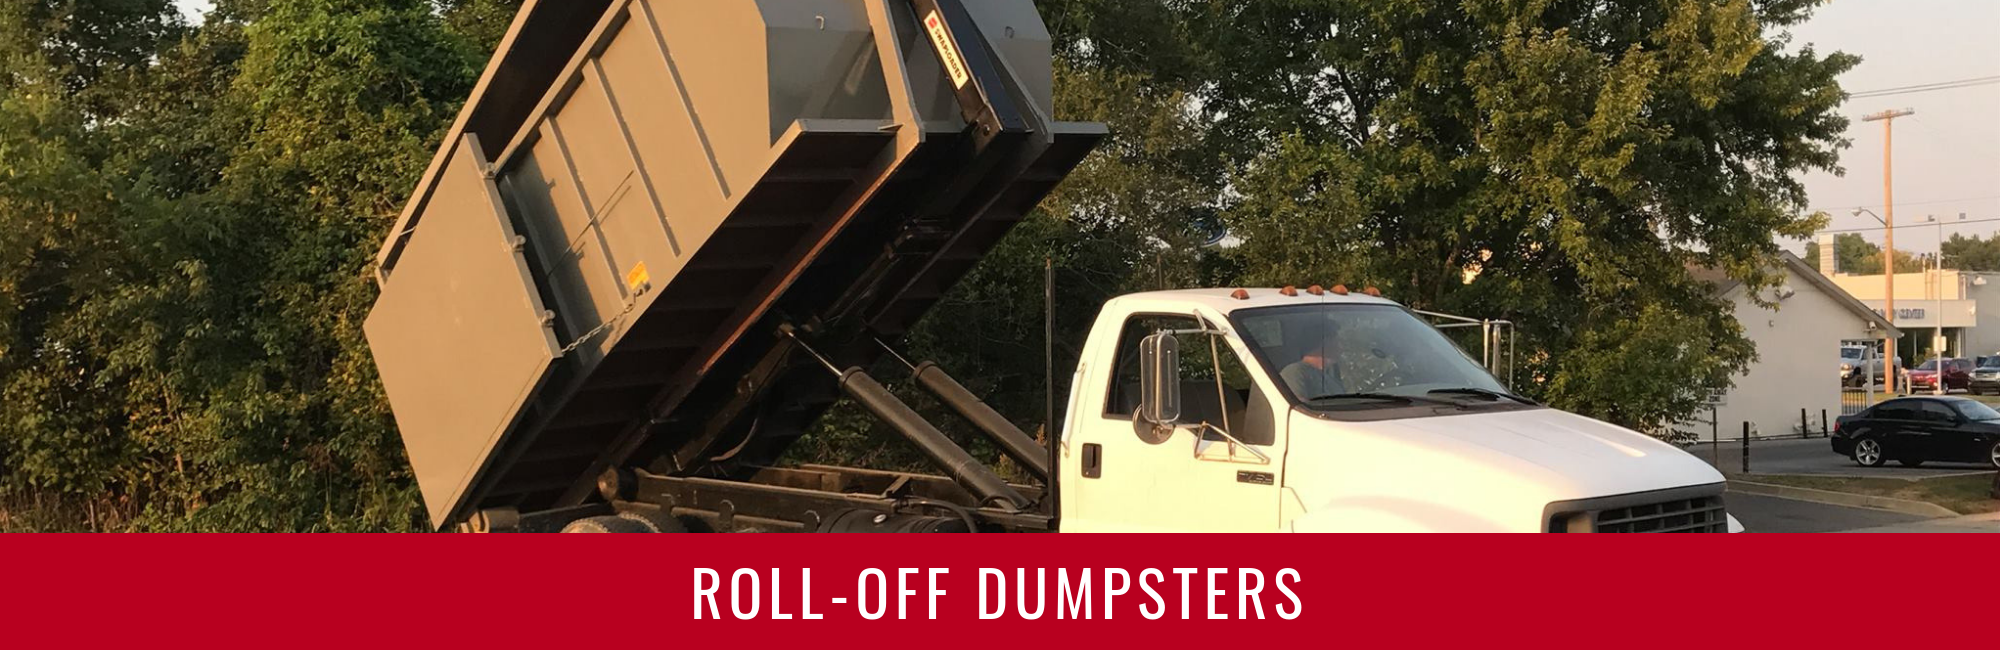 Roll-Off Dumpsters